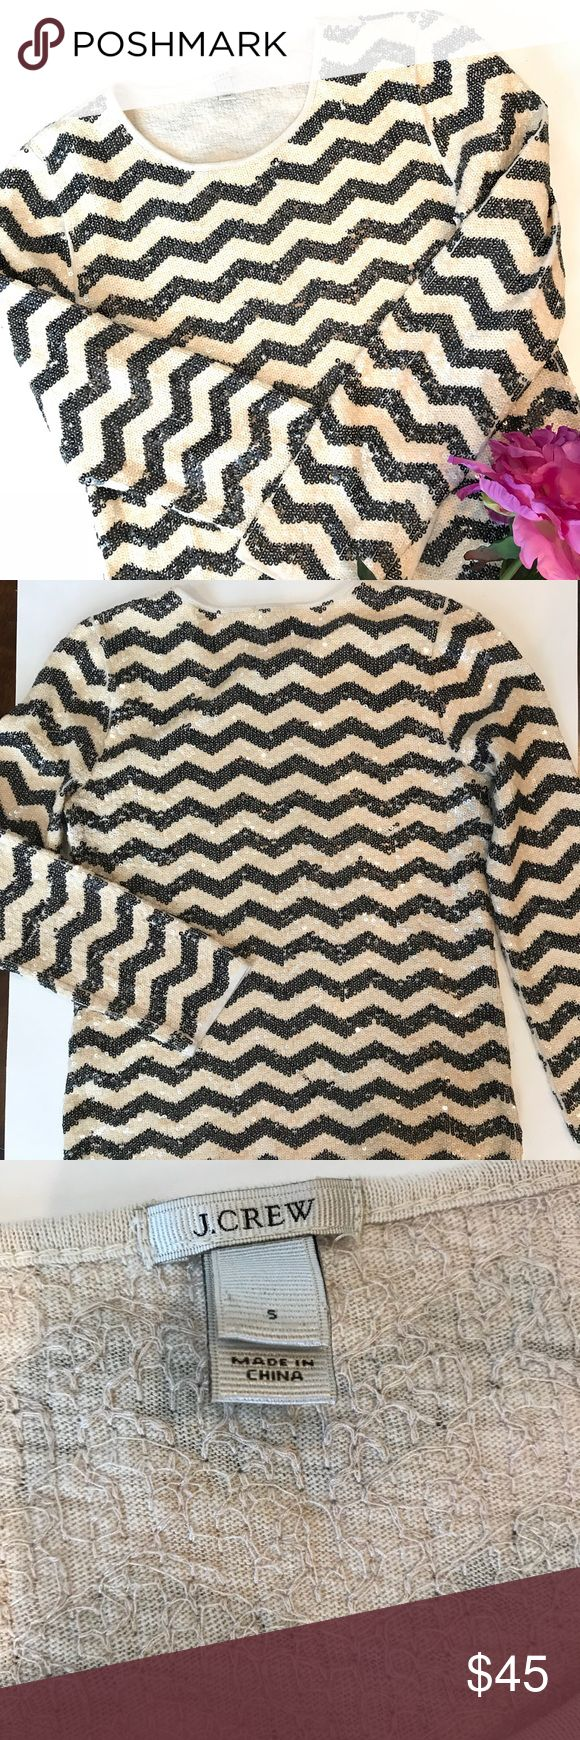 "J. Crew Sequined Chevron Top There is a sequin Missing (pictured).   Otherwise perfect condition.   Measures 16.5 armpit to armpit and 23"" shoulder to hem  Smoke free, pet friendly home.   All offers always considered or bundle your likes for a discount 👗 J. Crew Tops"